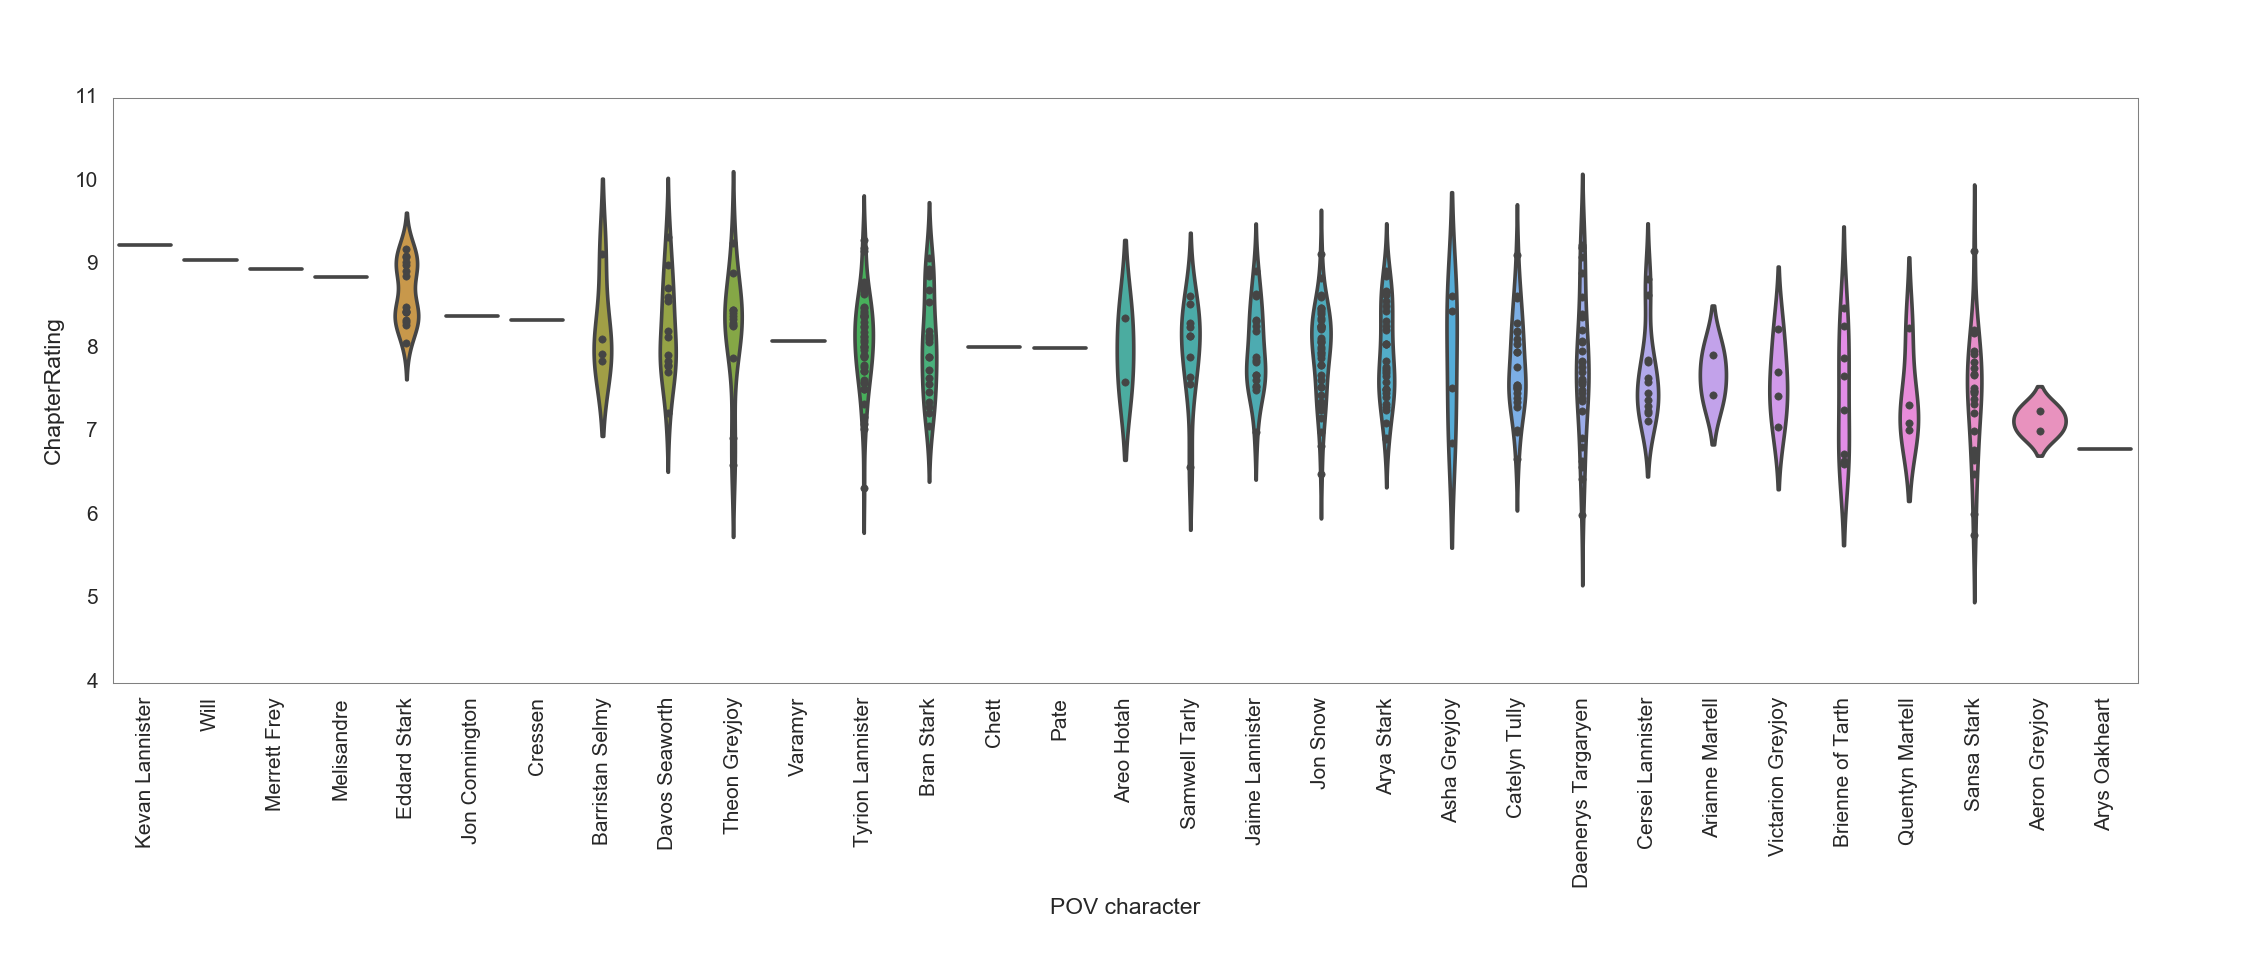 Chapter ratings distribution by POV - violin